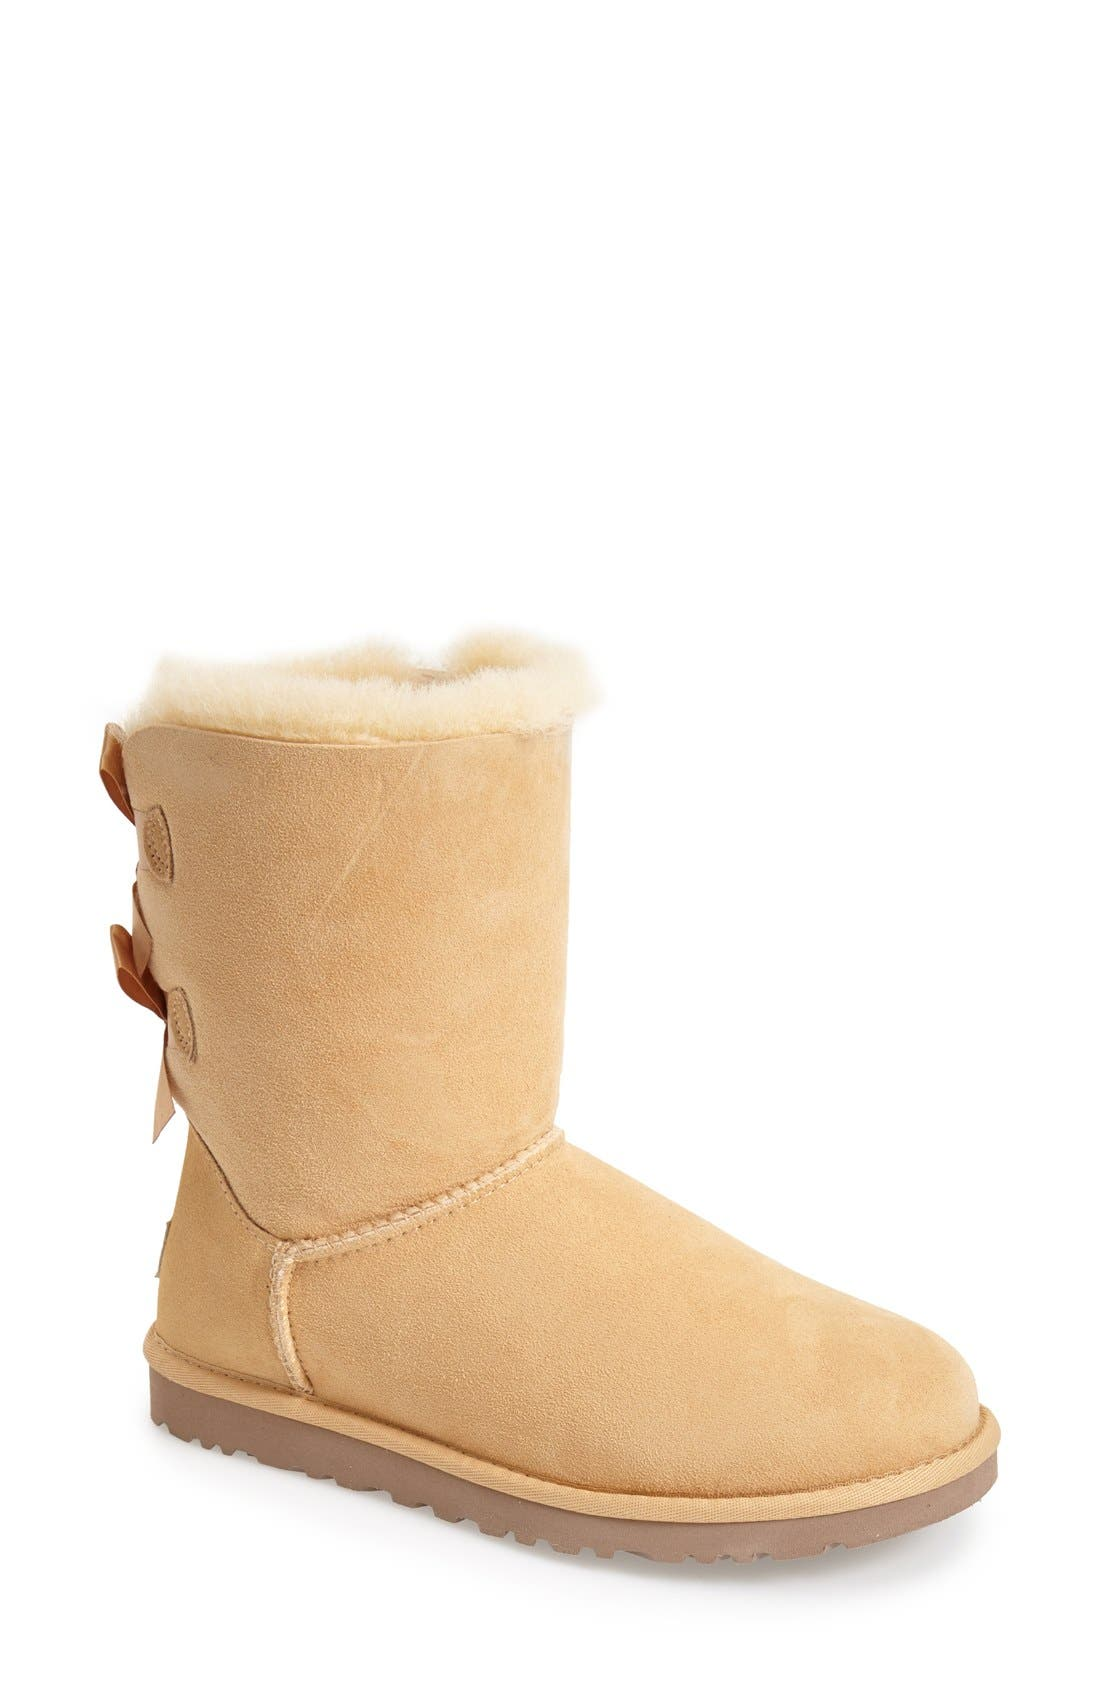 nordstrom bailey bow ugg boots